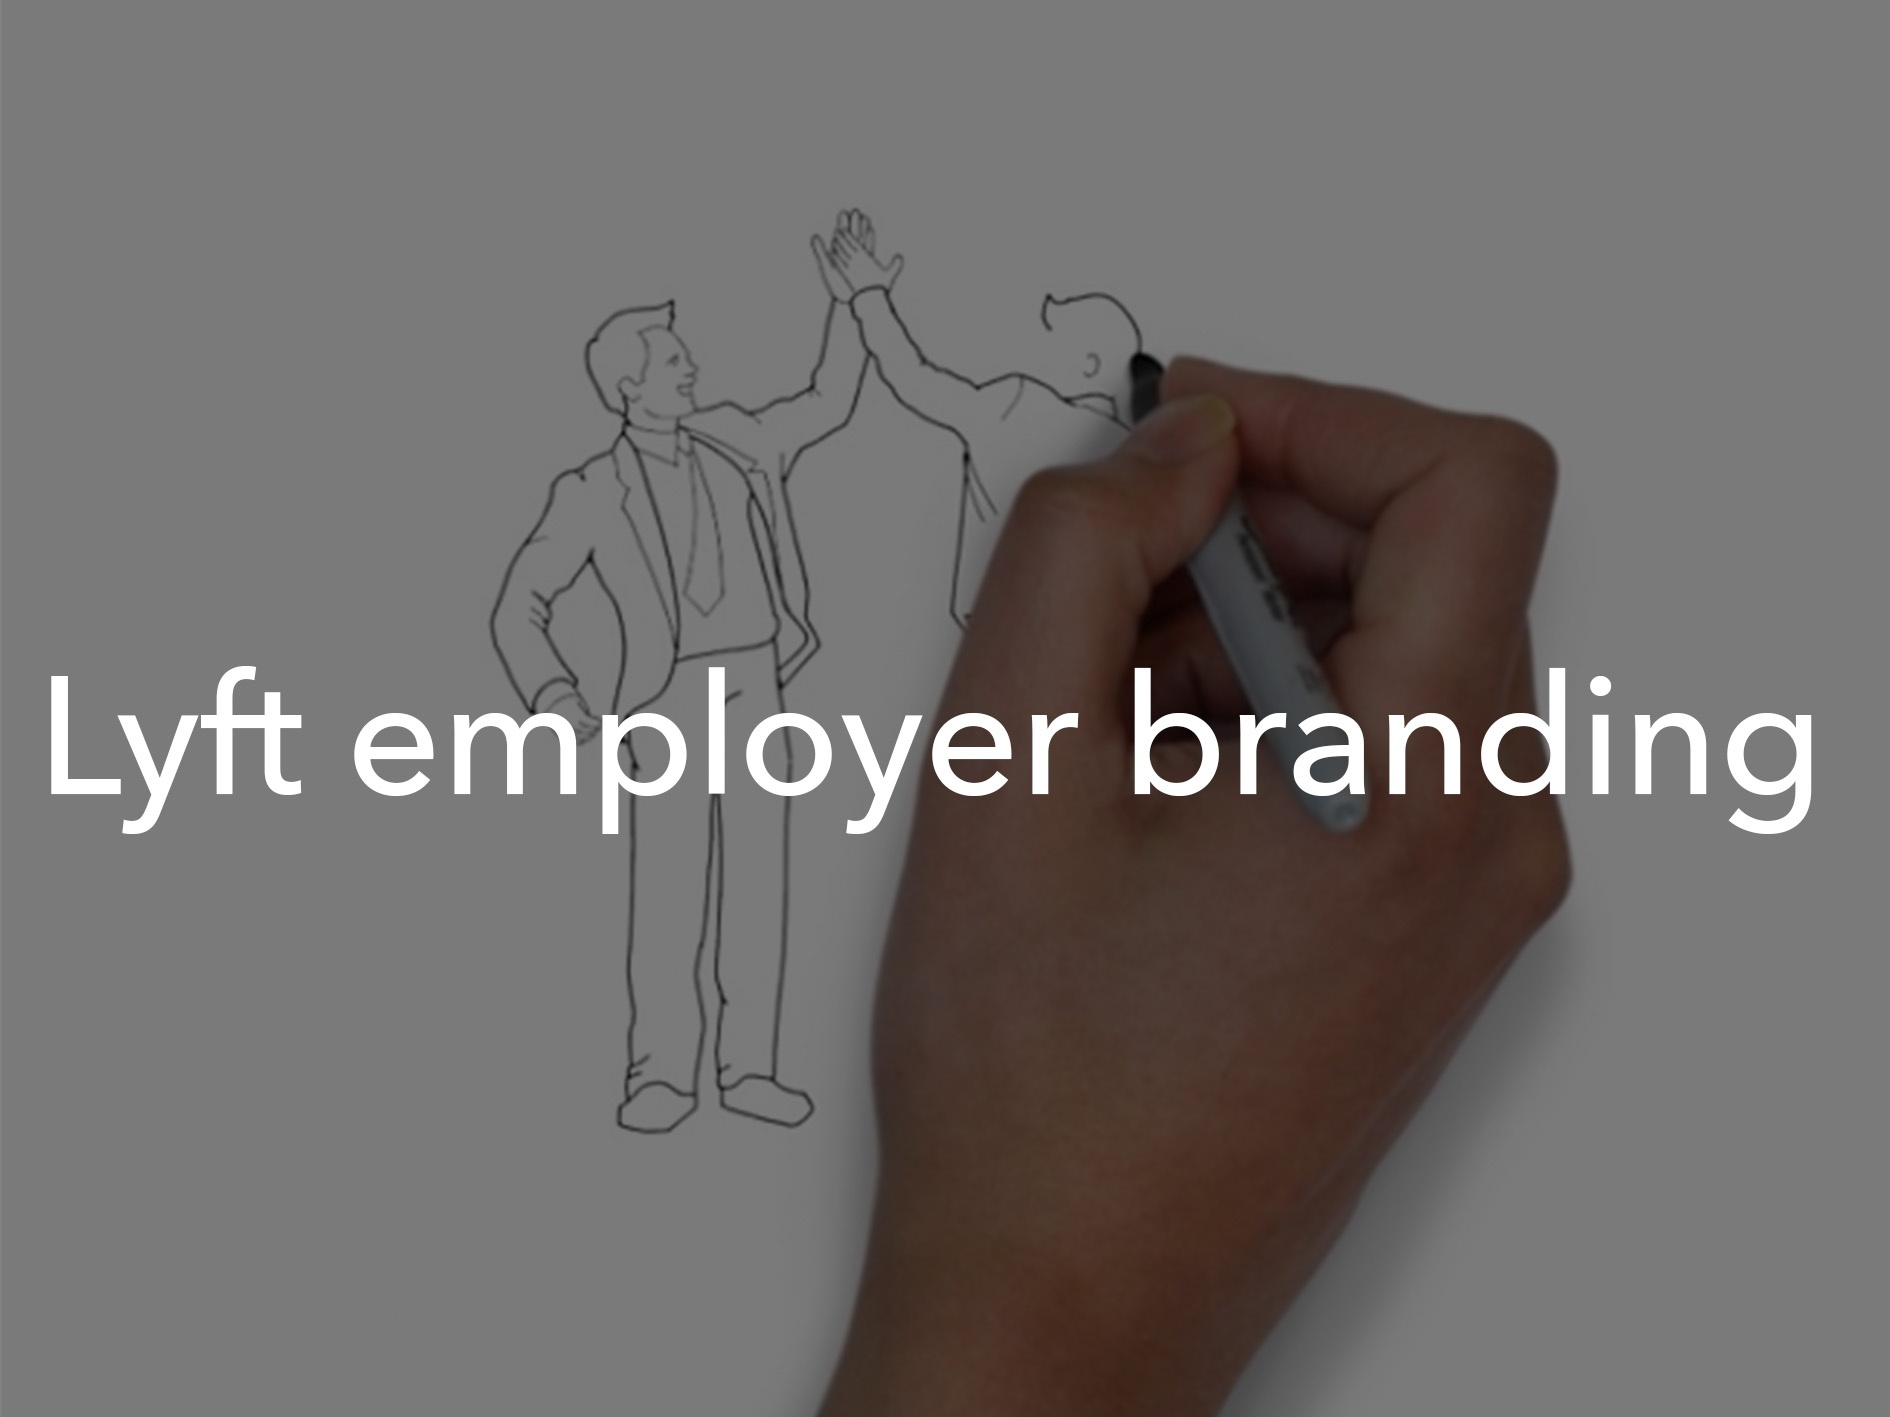 Lyft employer branding